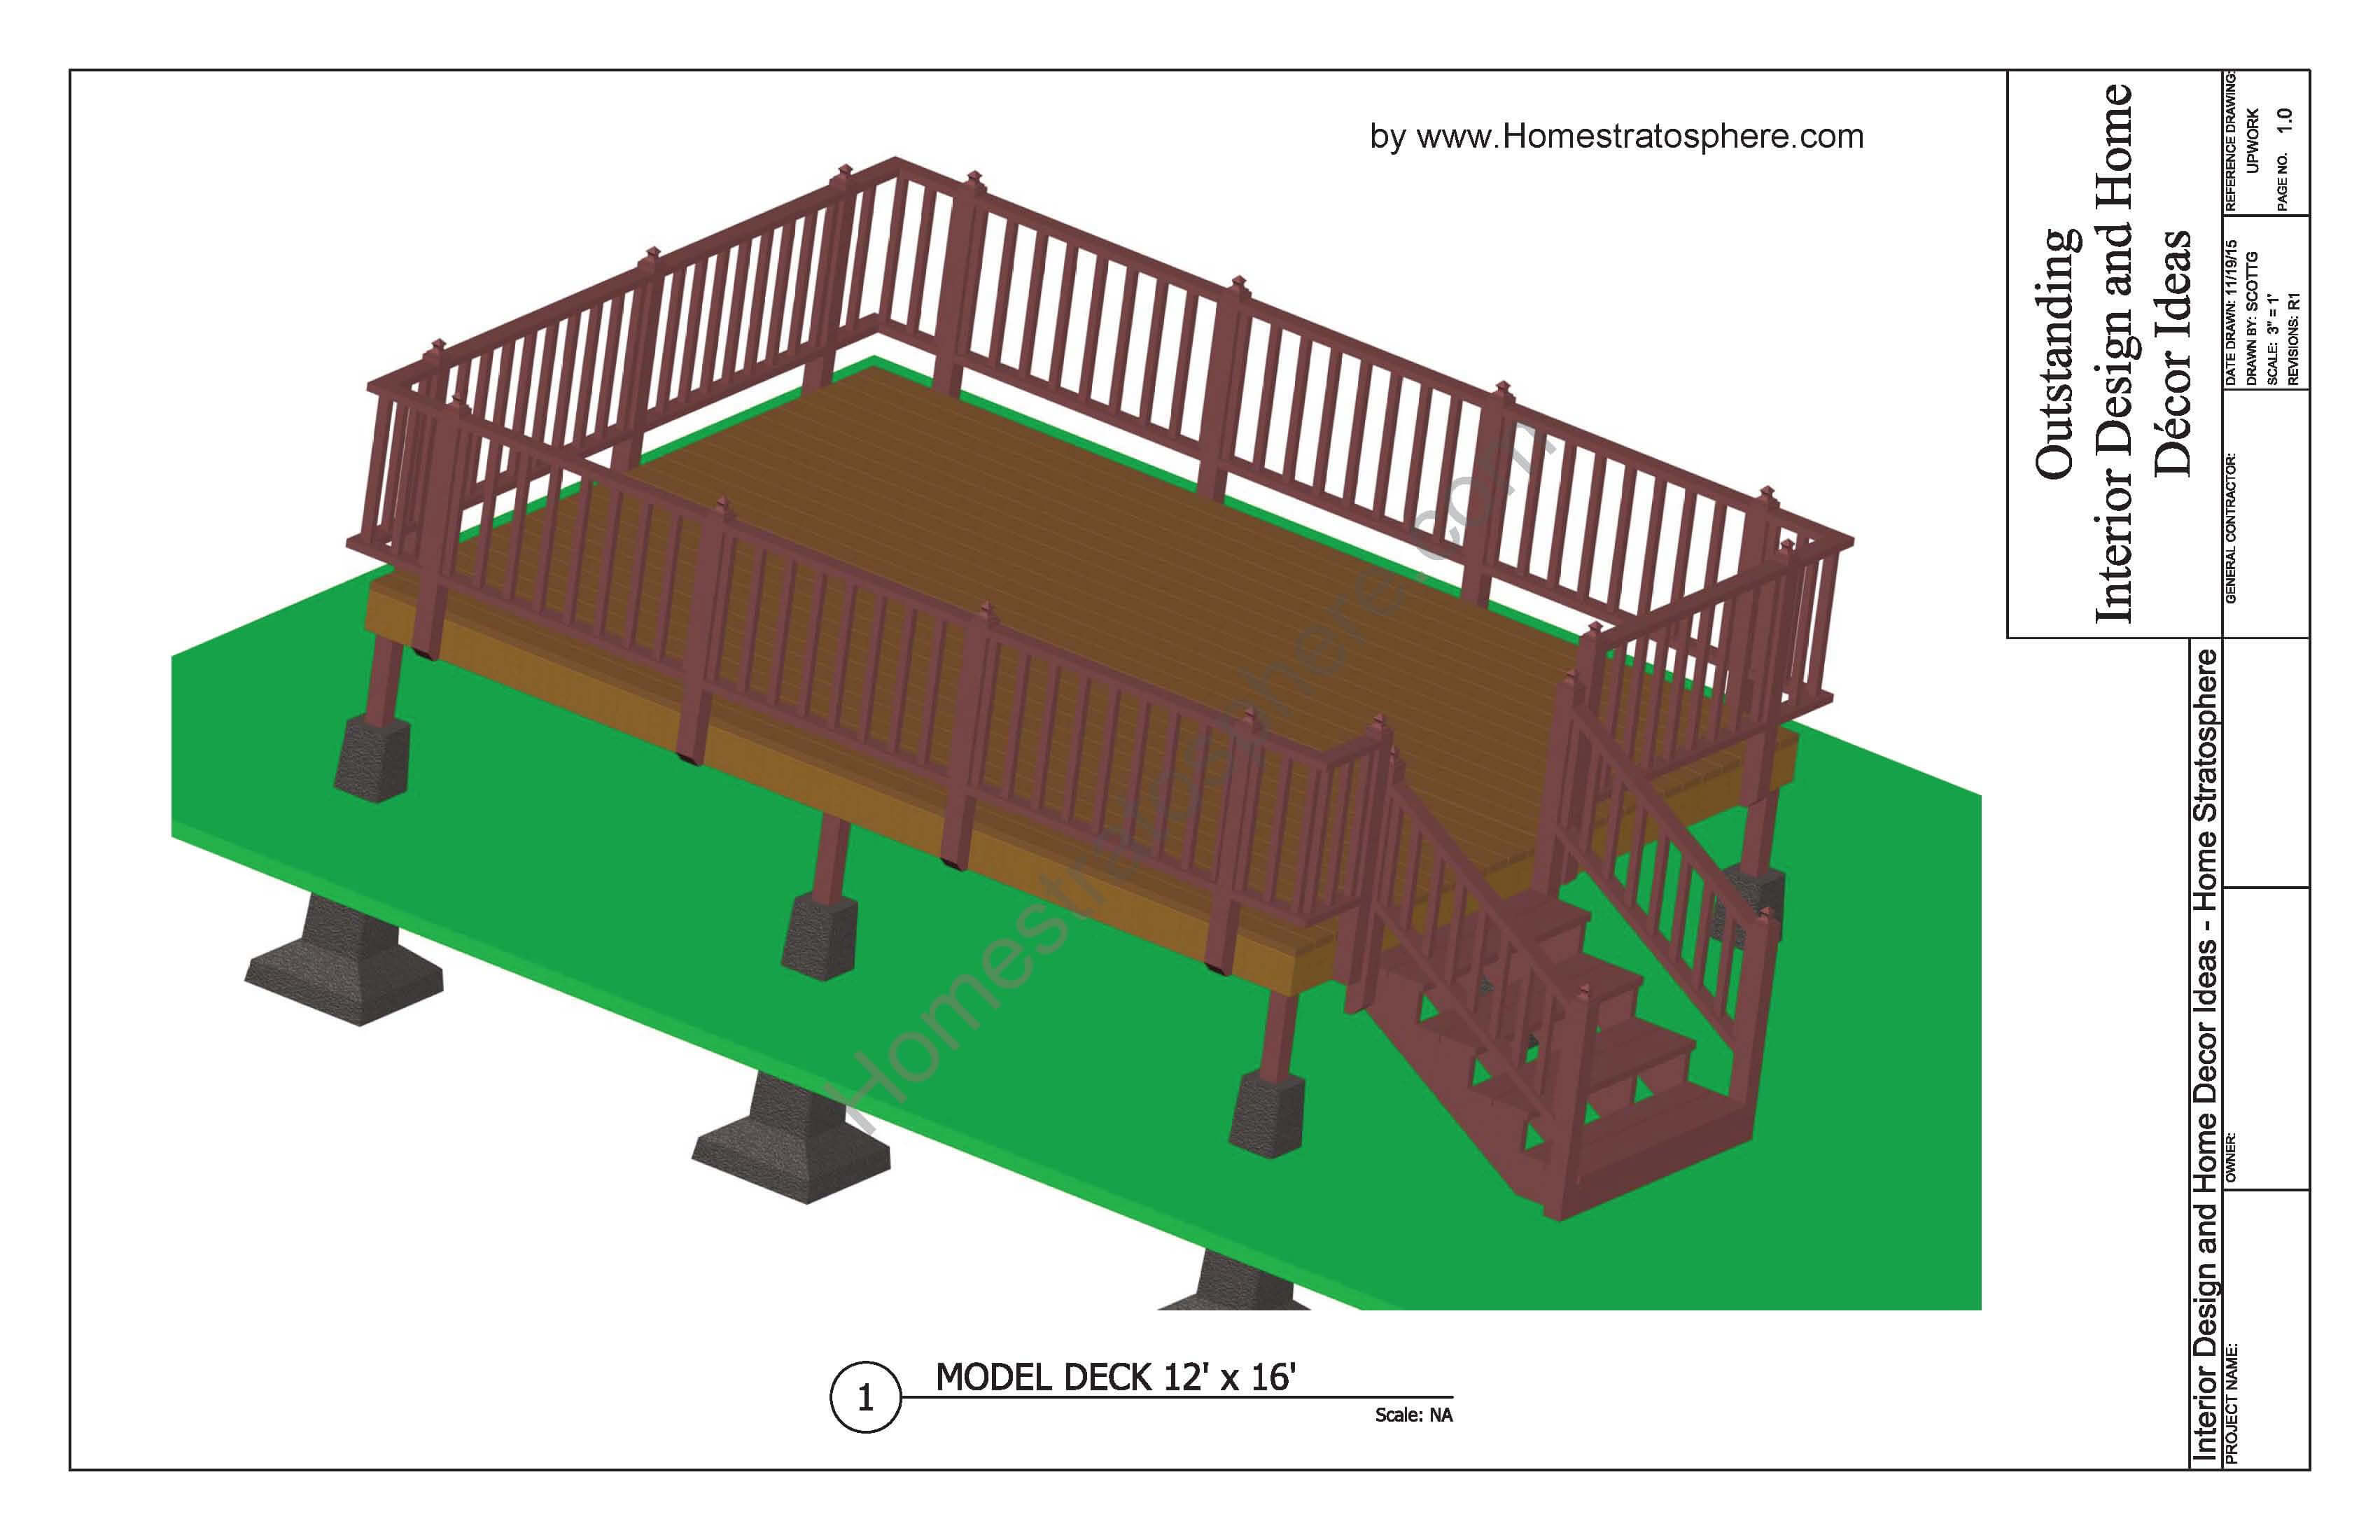 Free Deck Plans And Blueprints Online With PDF Downloads